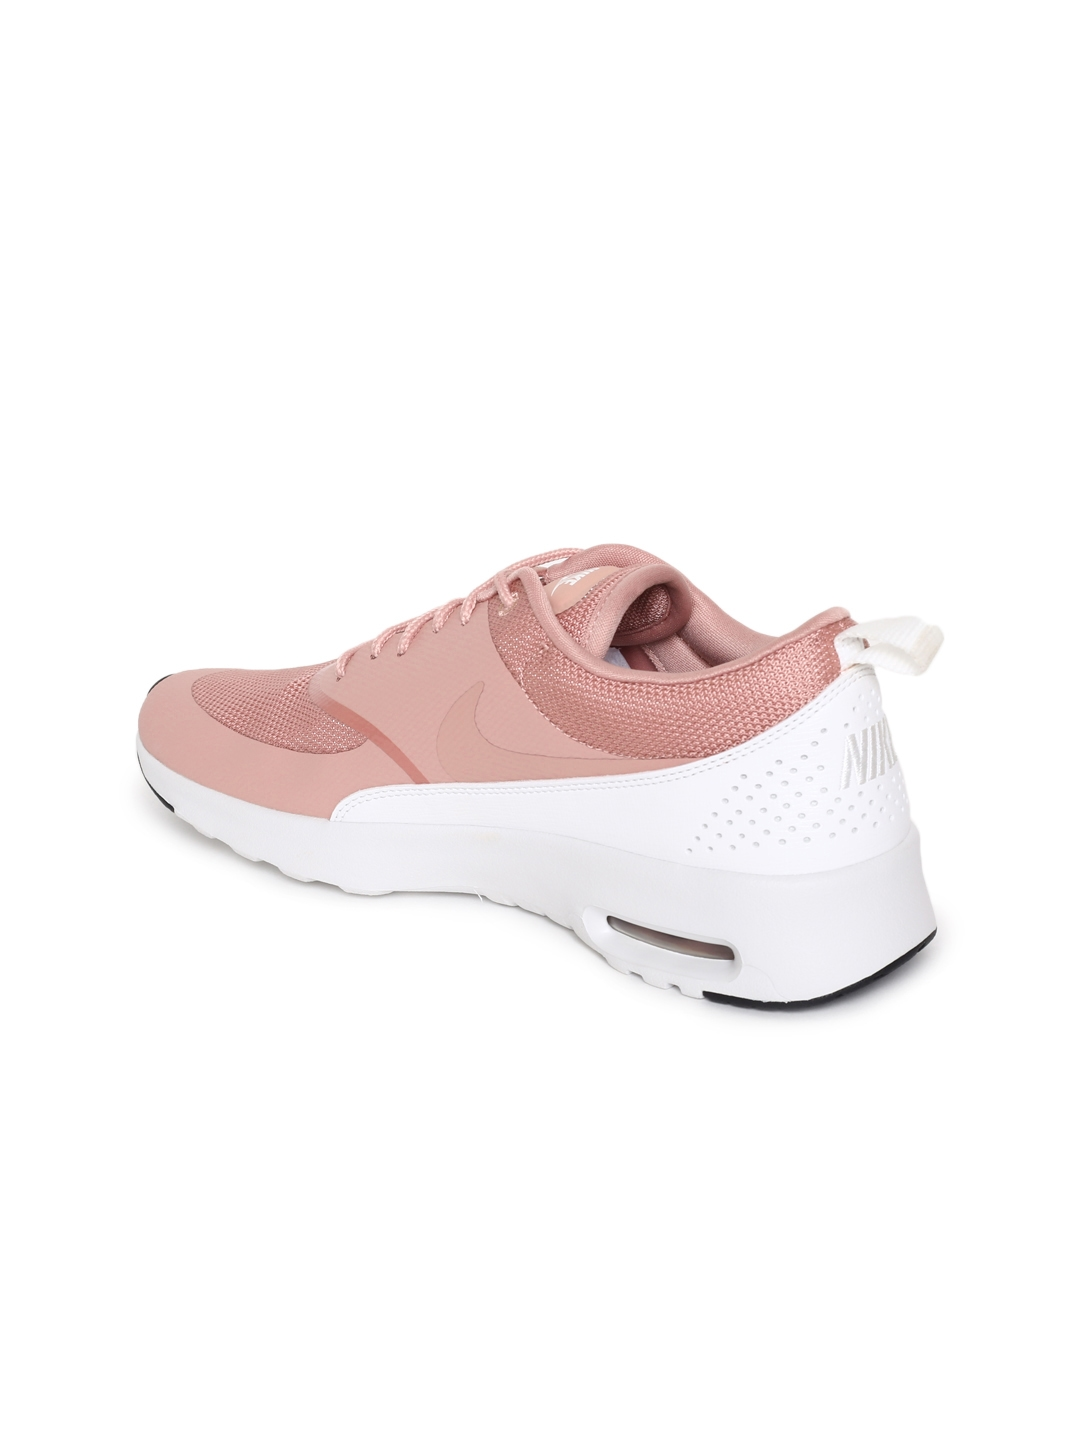 2a6a8731ed Buy Nike Women Dusty Pink Air Max Thea Running Shoes - Sports Shoes ...